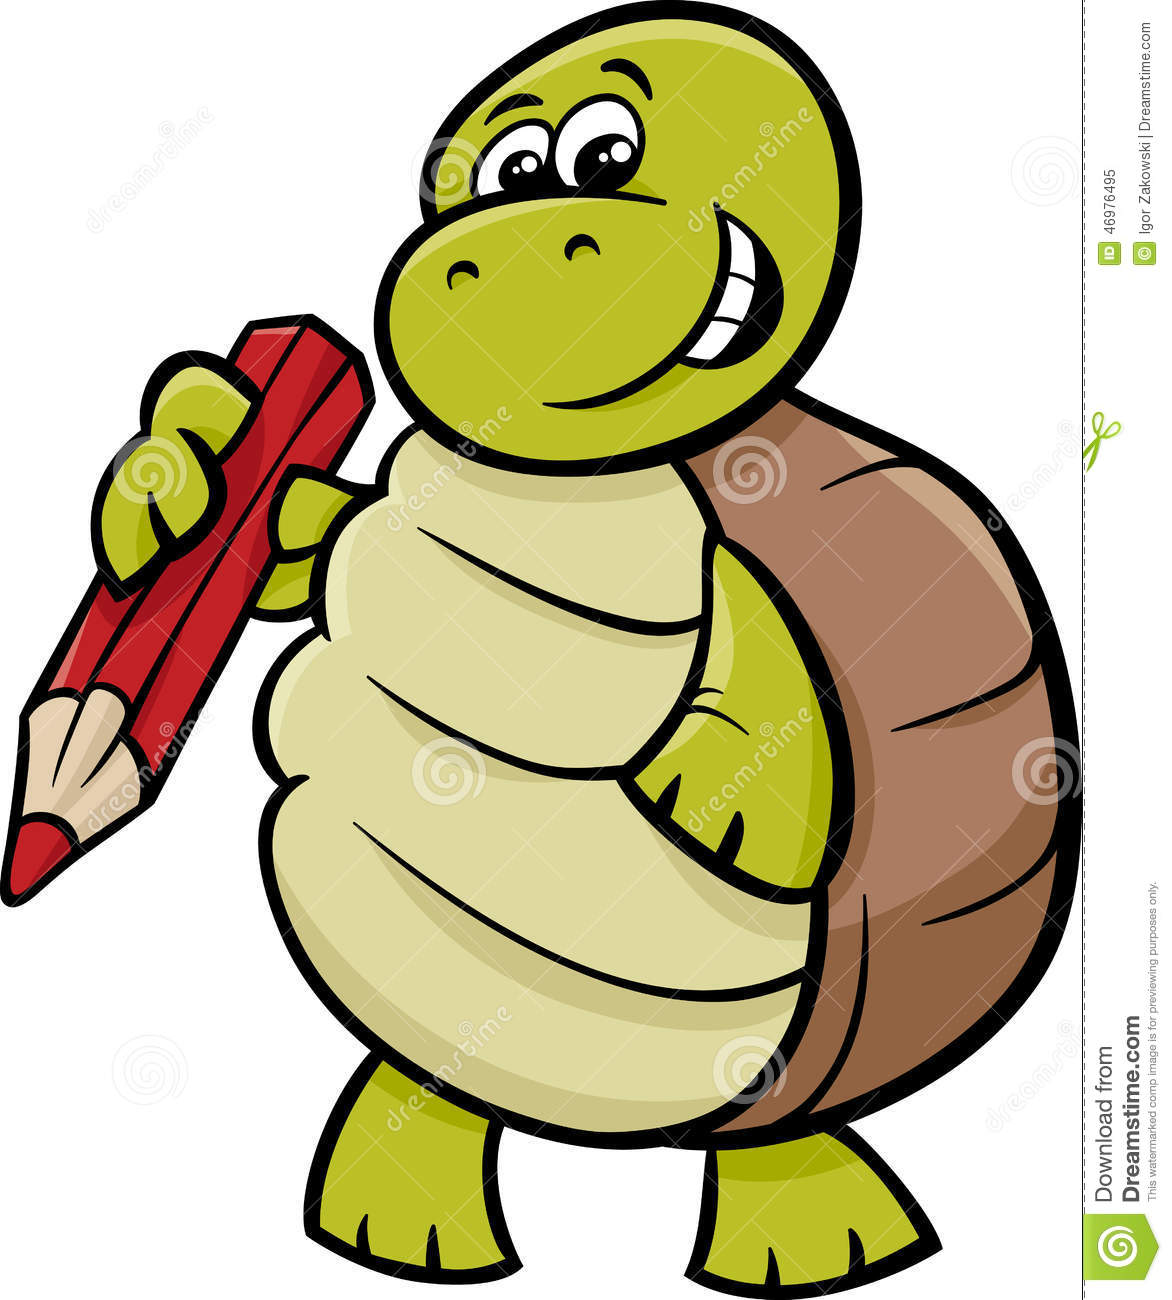 Turtle With Pencil Cartoon Illustration Stock Vector - Image: 46976495